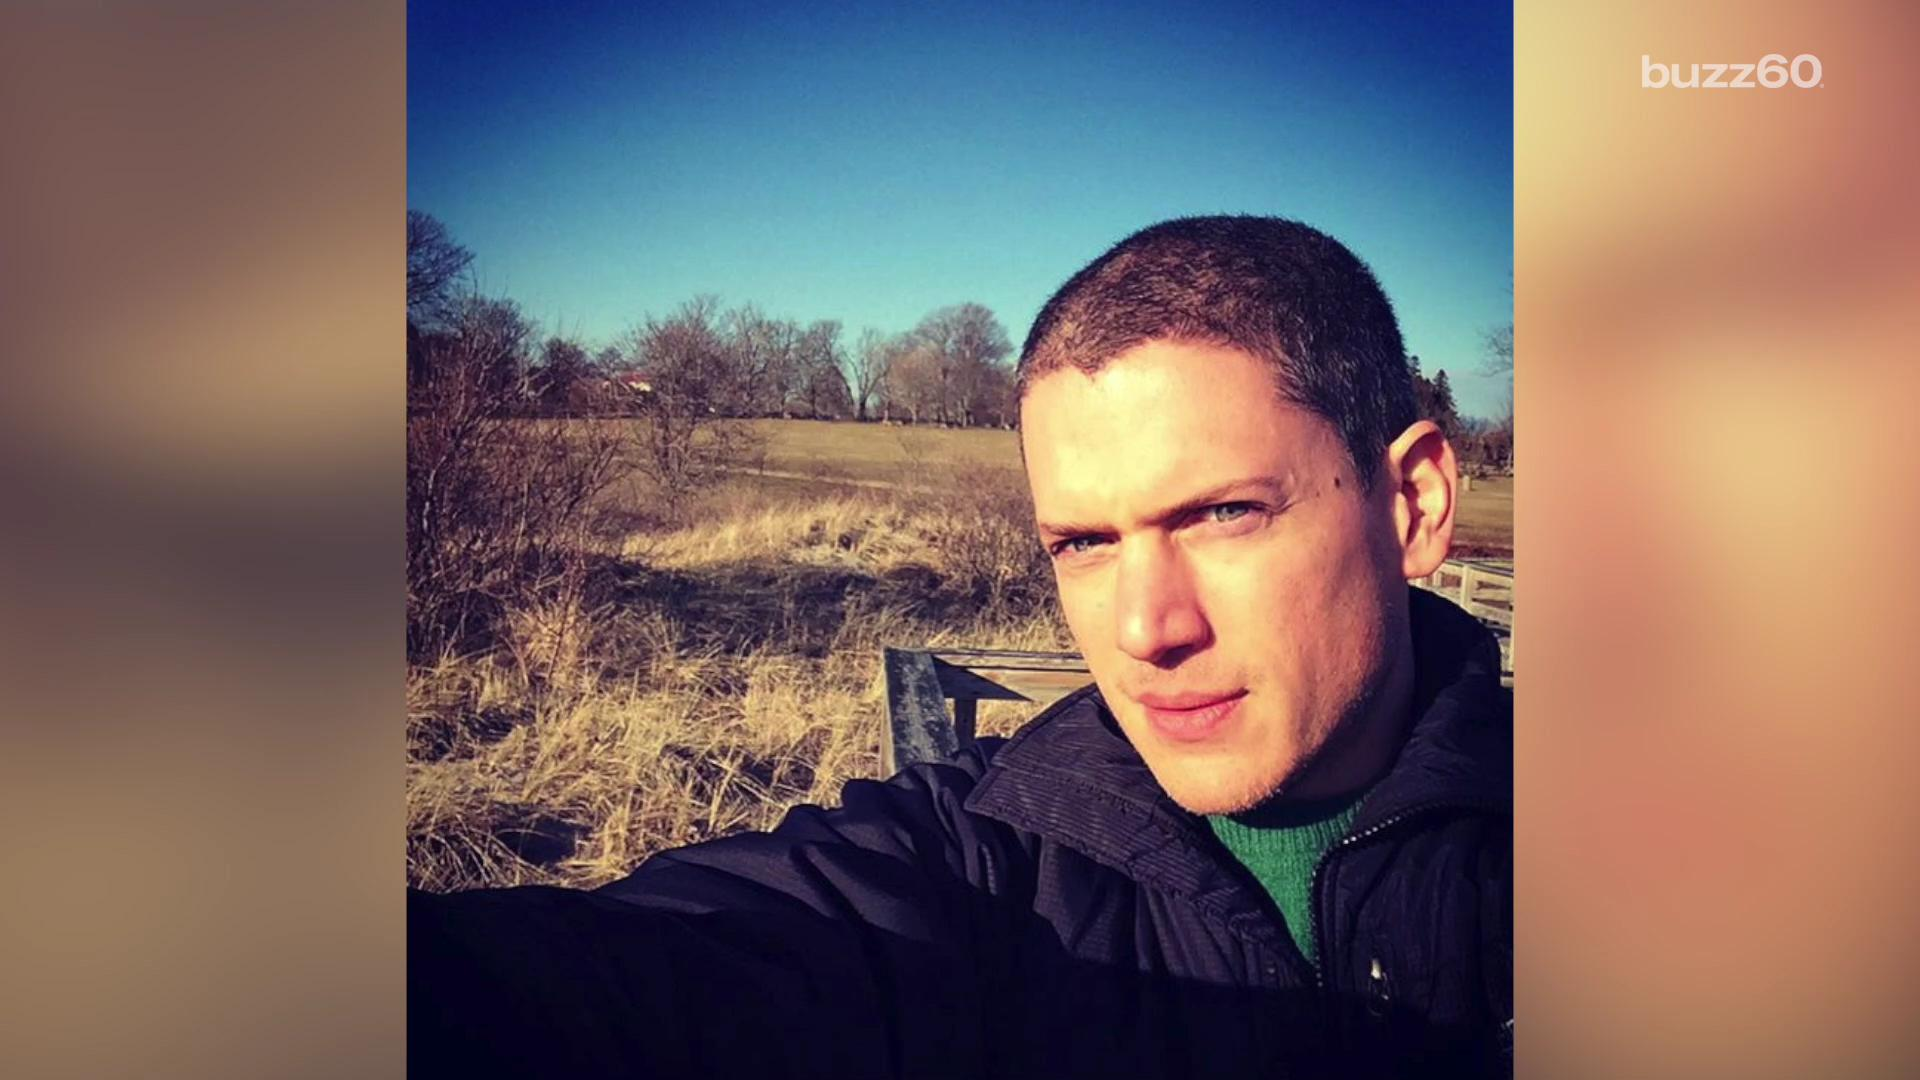 29906170001_4821713328001_thumb Buzz60video1136649679669823631 wentworth miller talks about depression, suicidal thoughts after